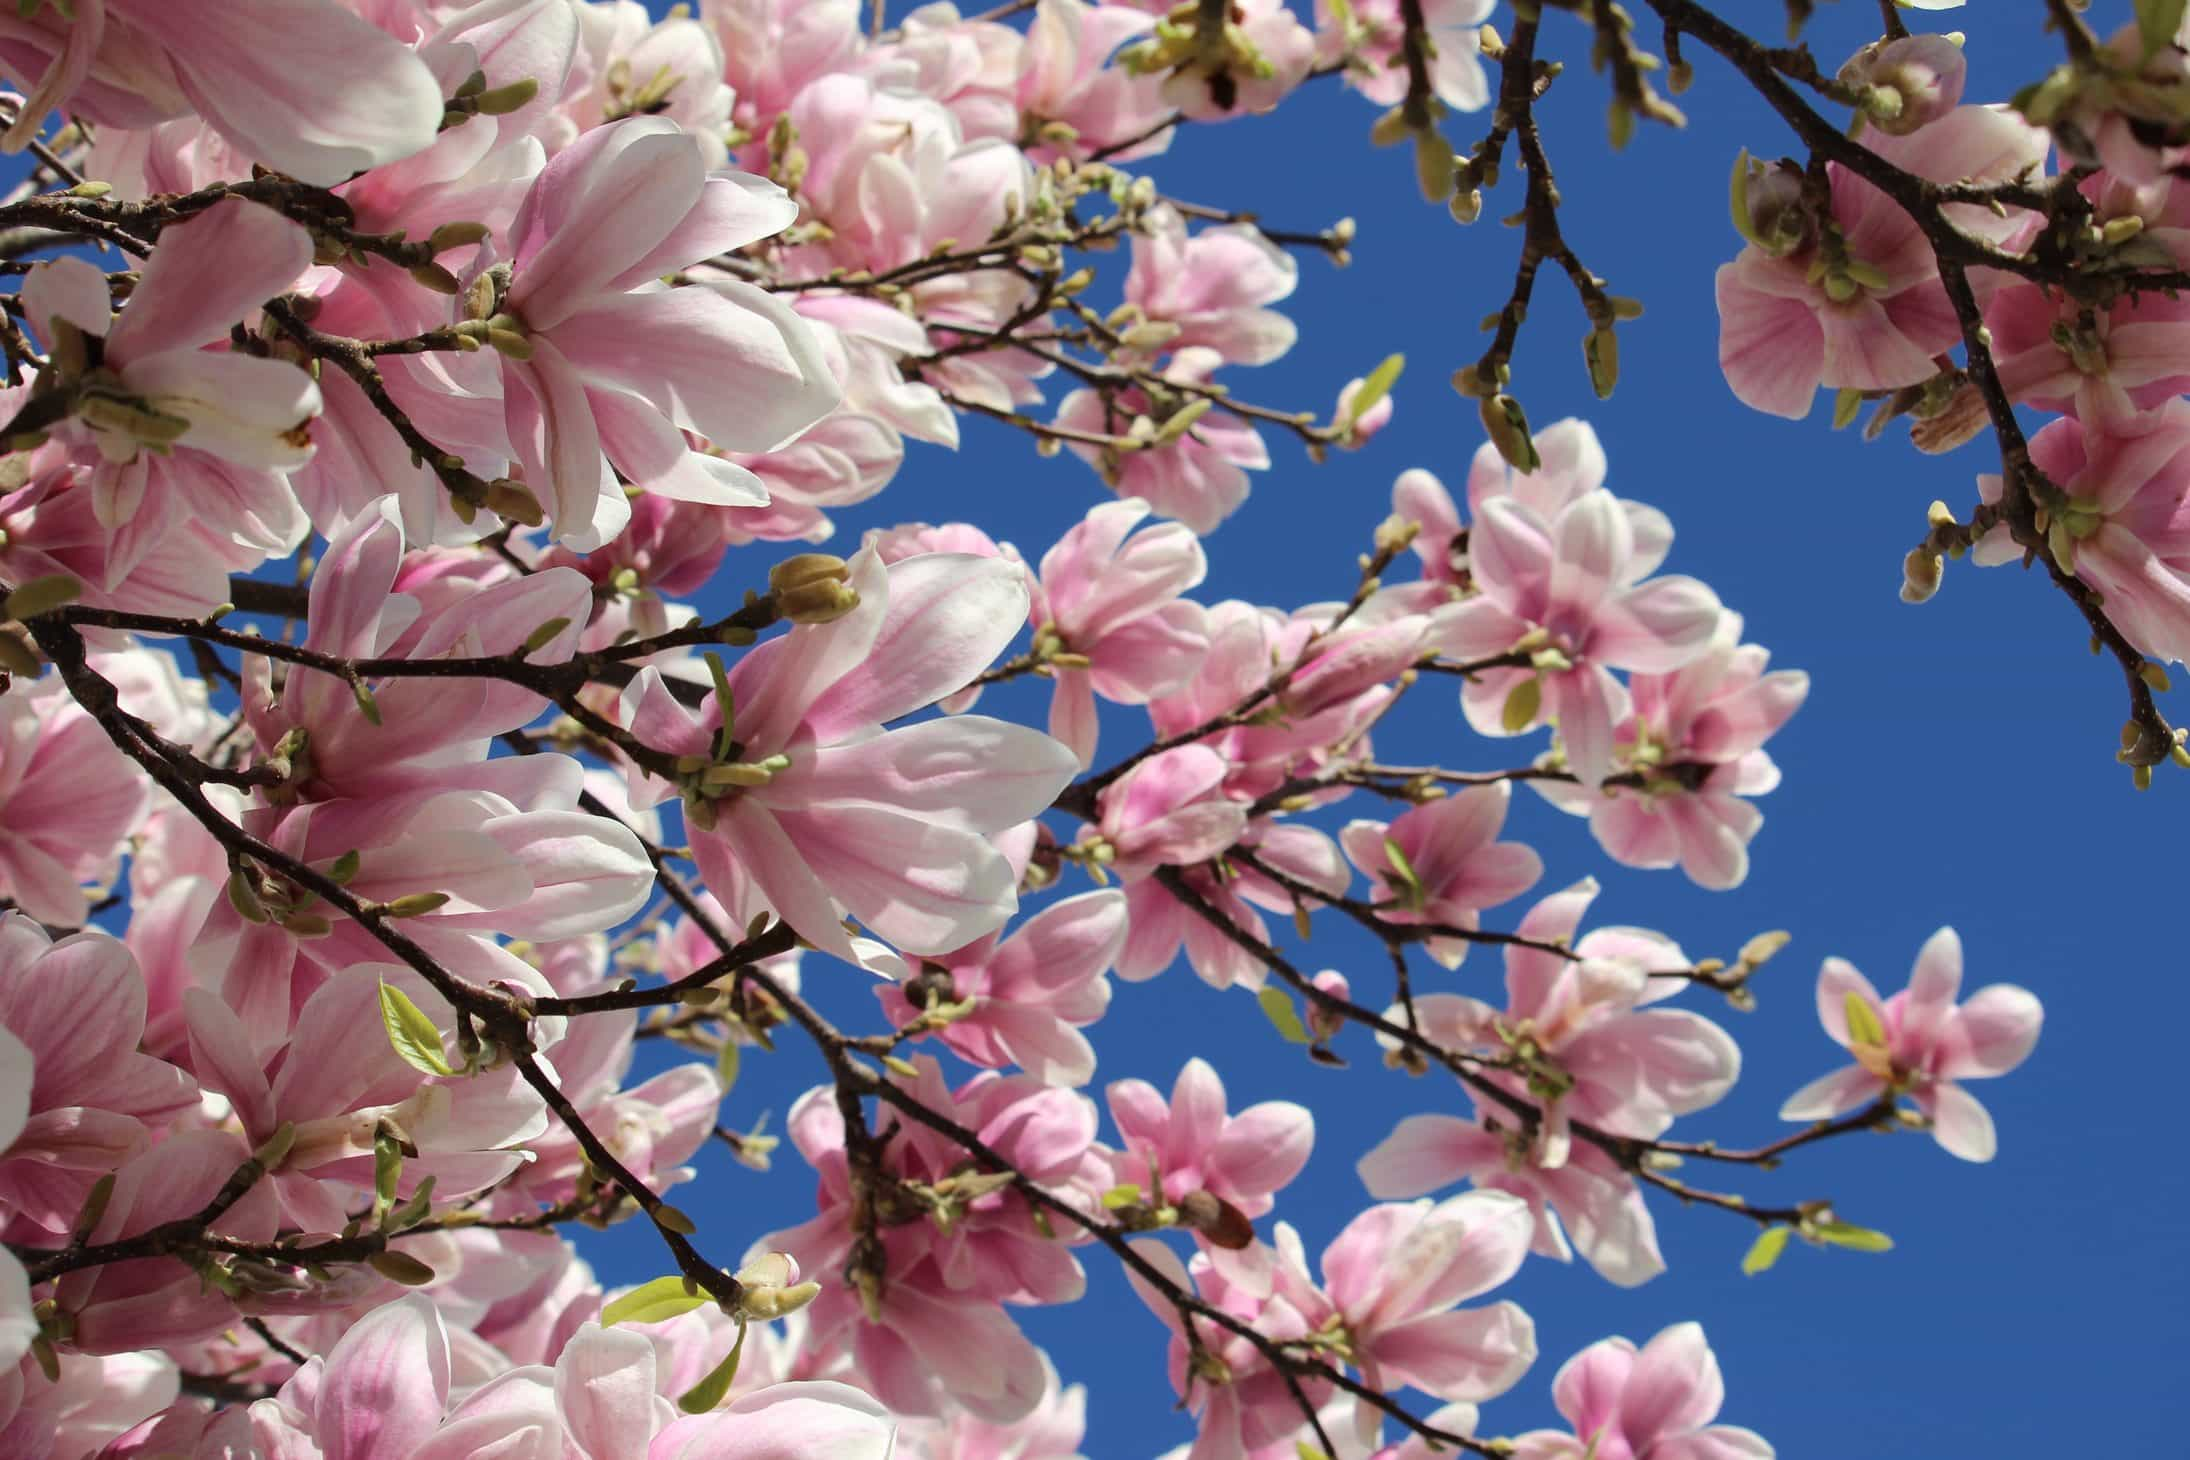 How to photograph flowering trees, pink magnolia bloom